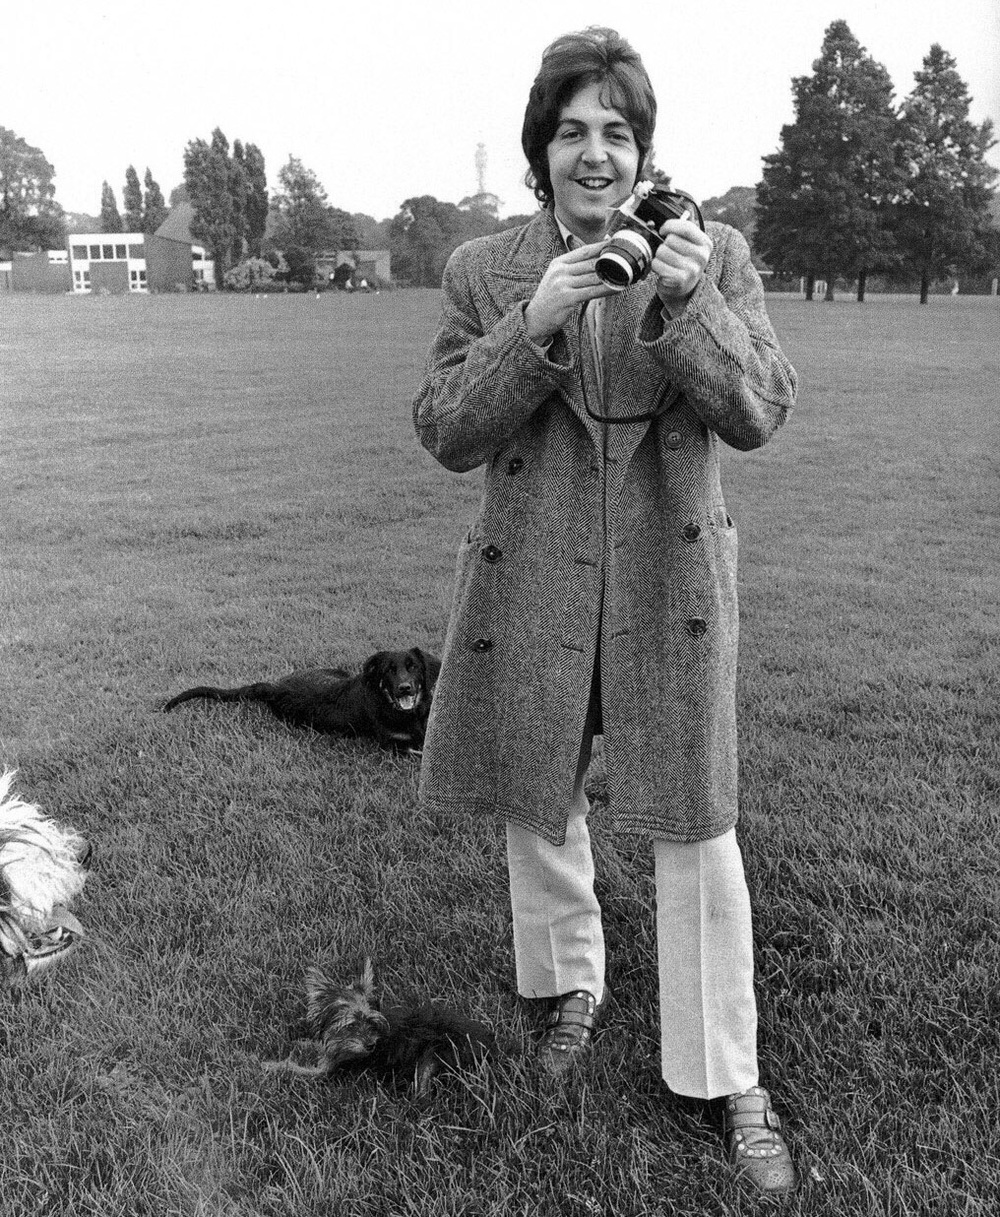 Paul McCartney out with his dogs and camera, 1968.